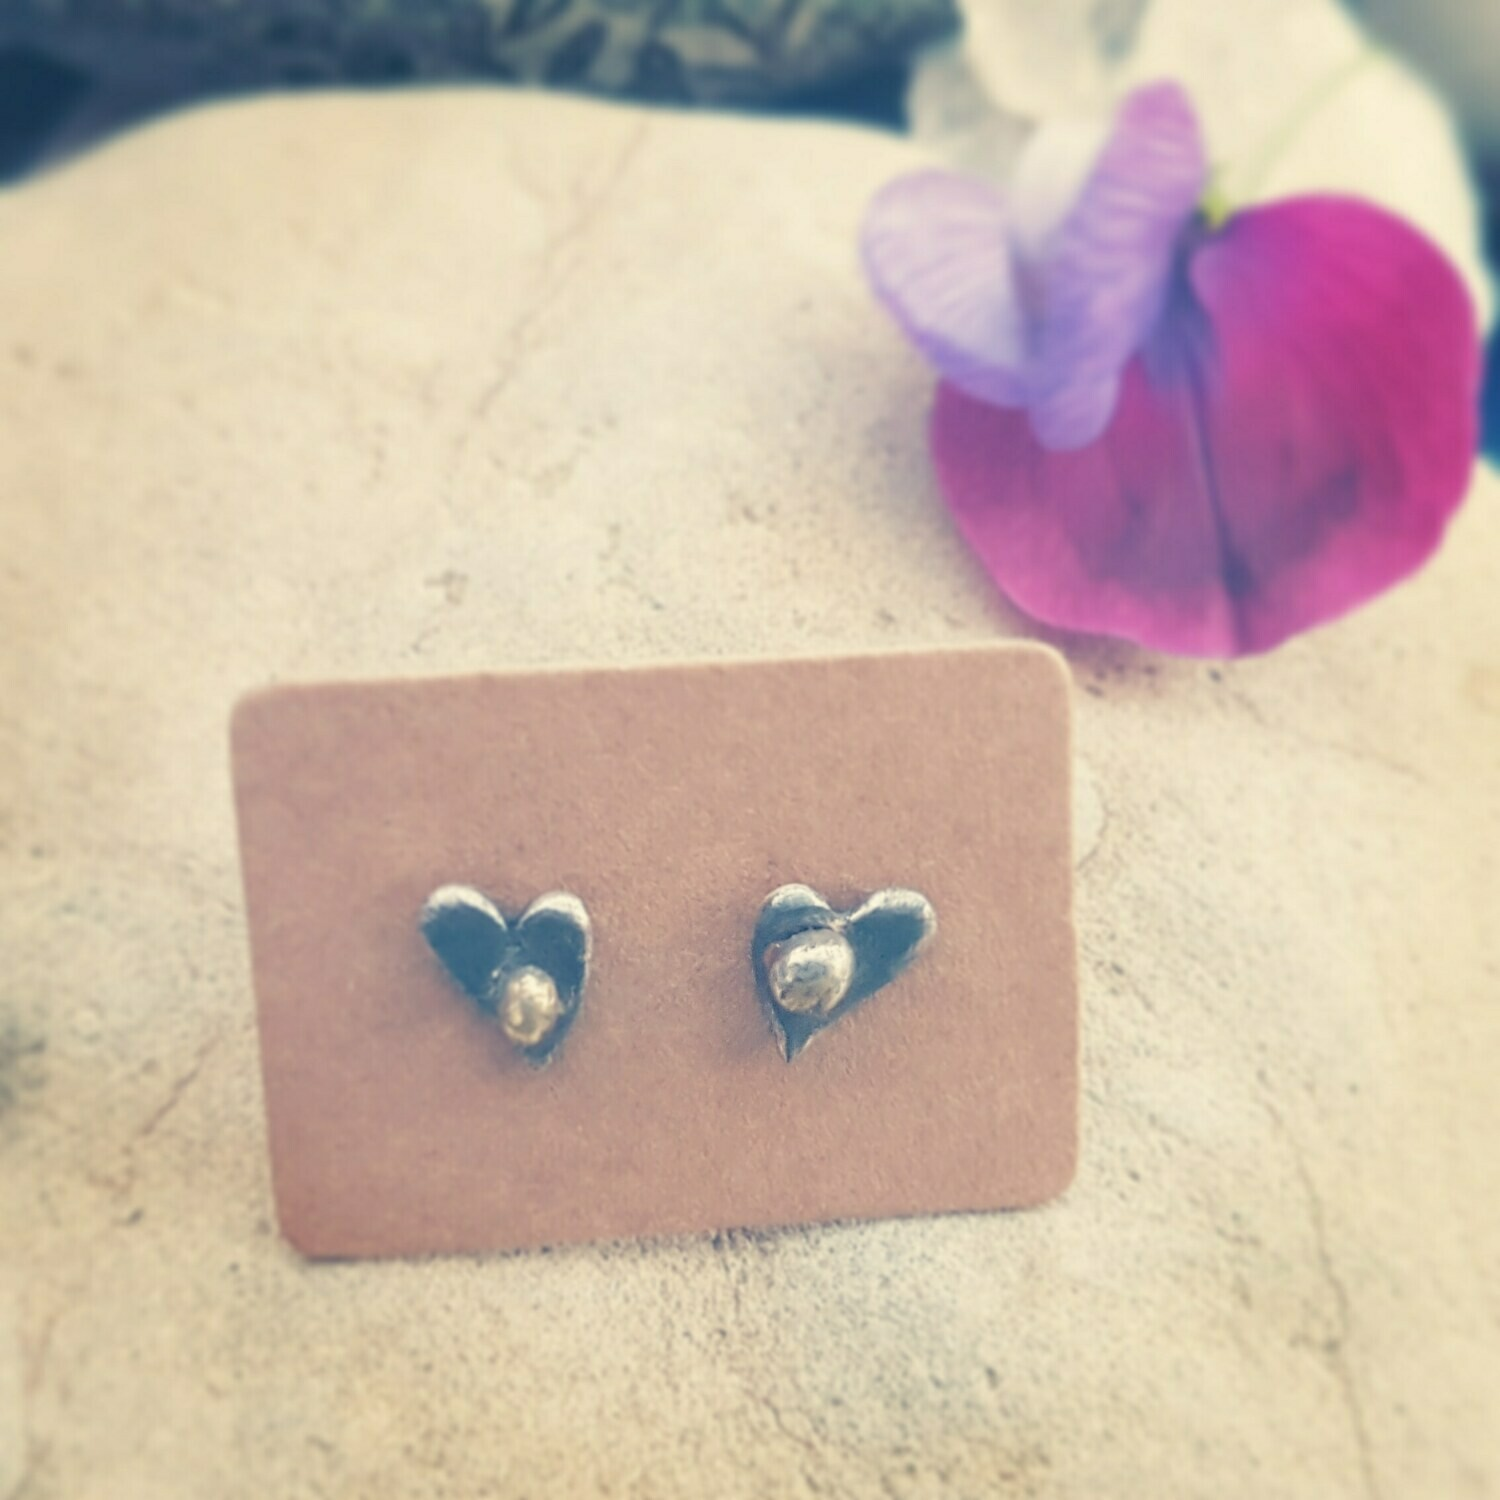 'You are My Sunshine' Love Charm Stud Earrings